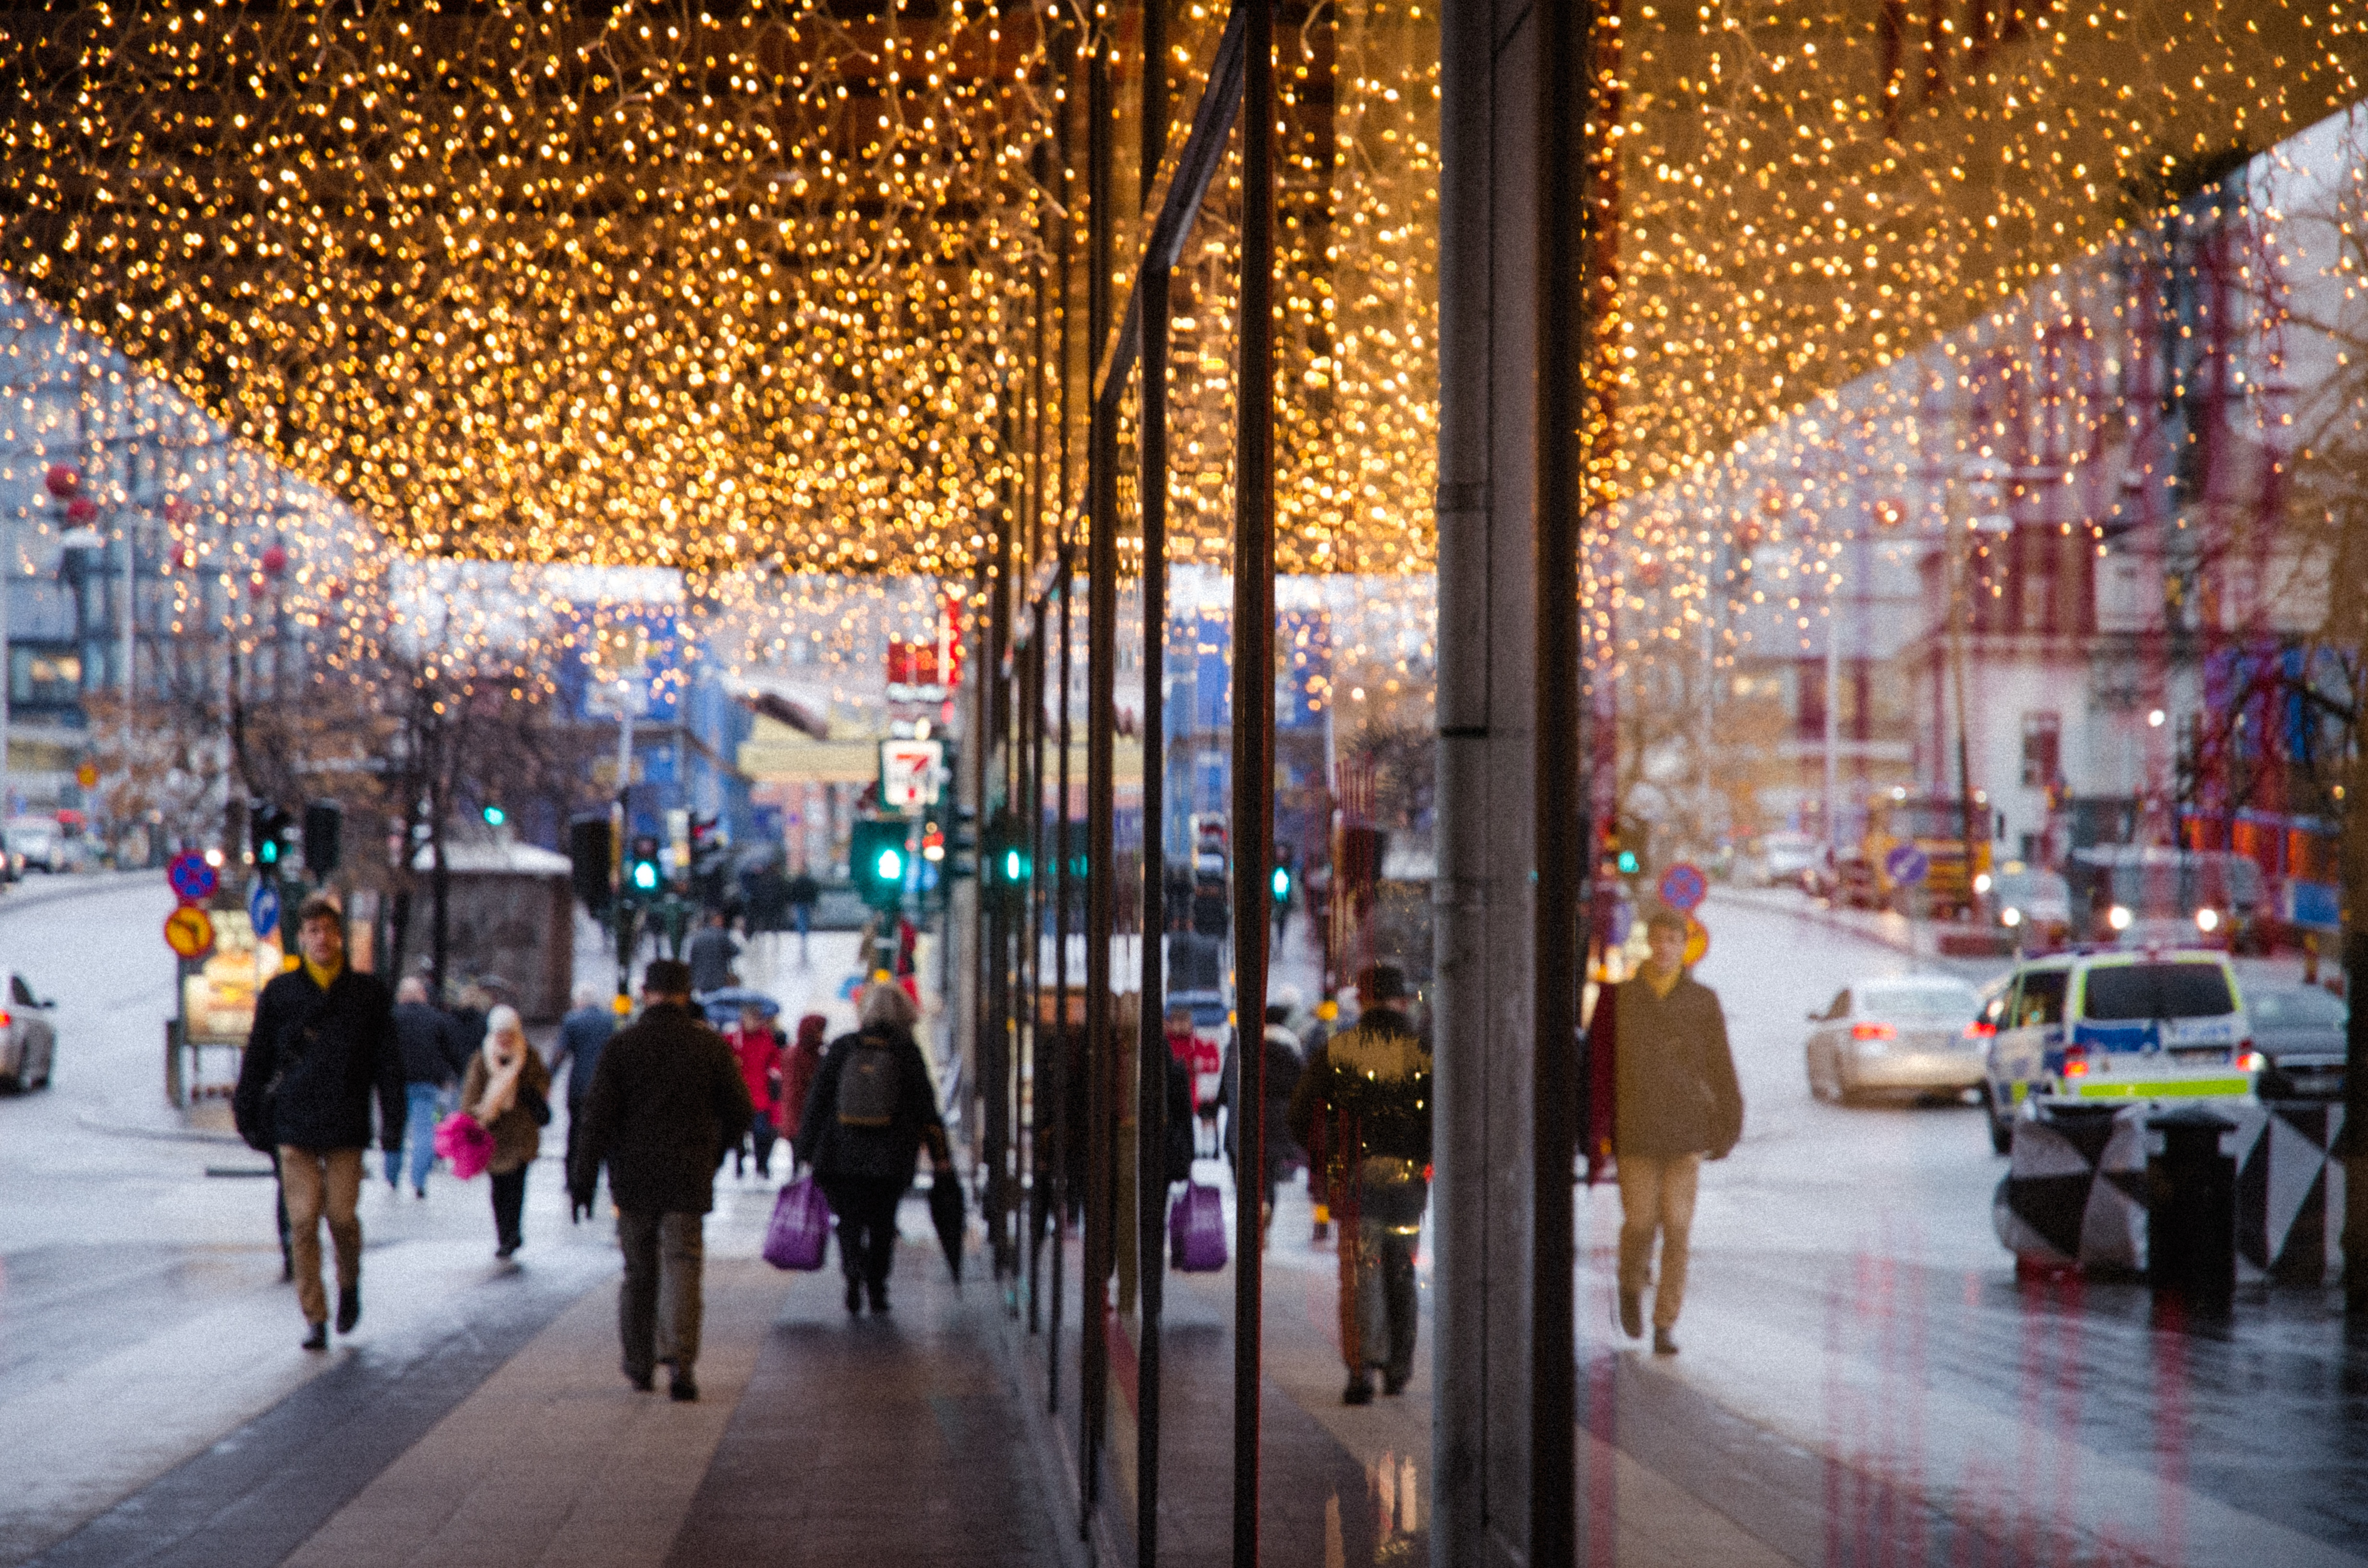 Downtown Christmas lights, Stockholm. Photo: J. Luedee